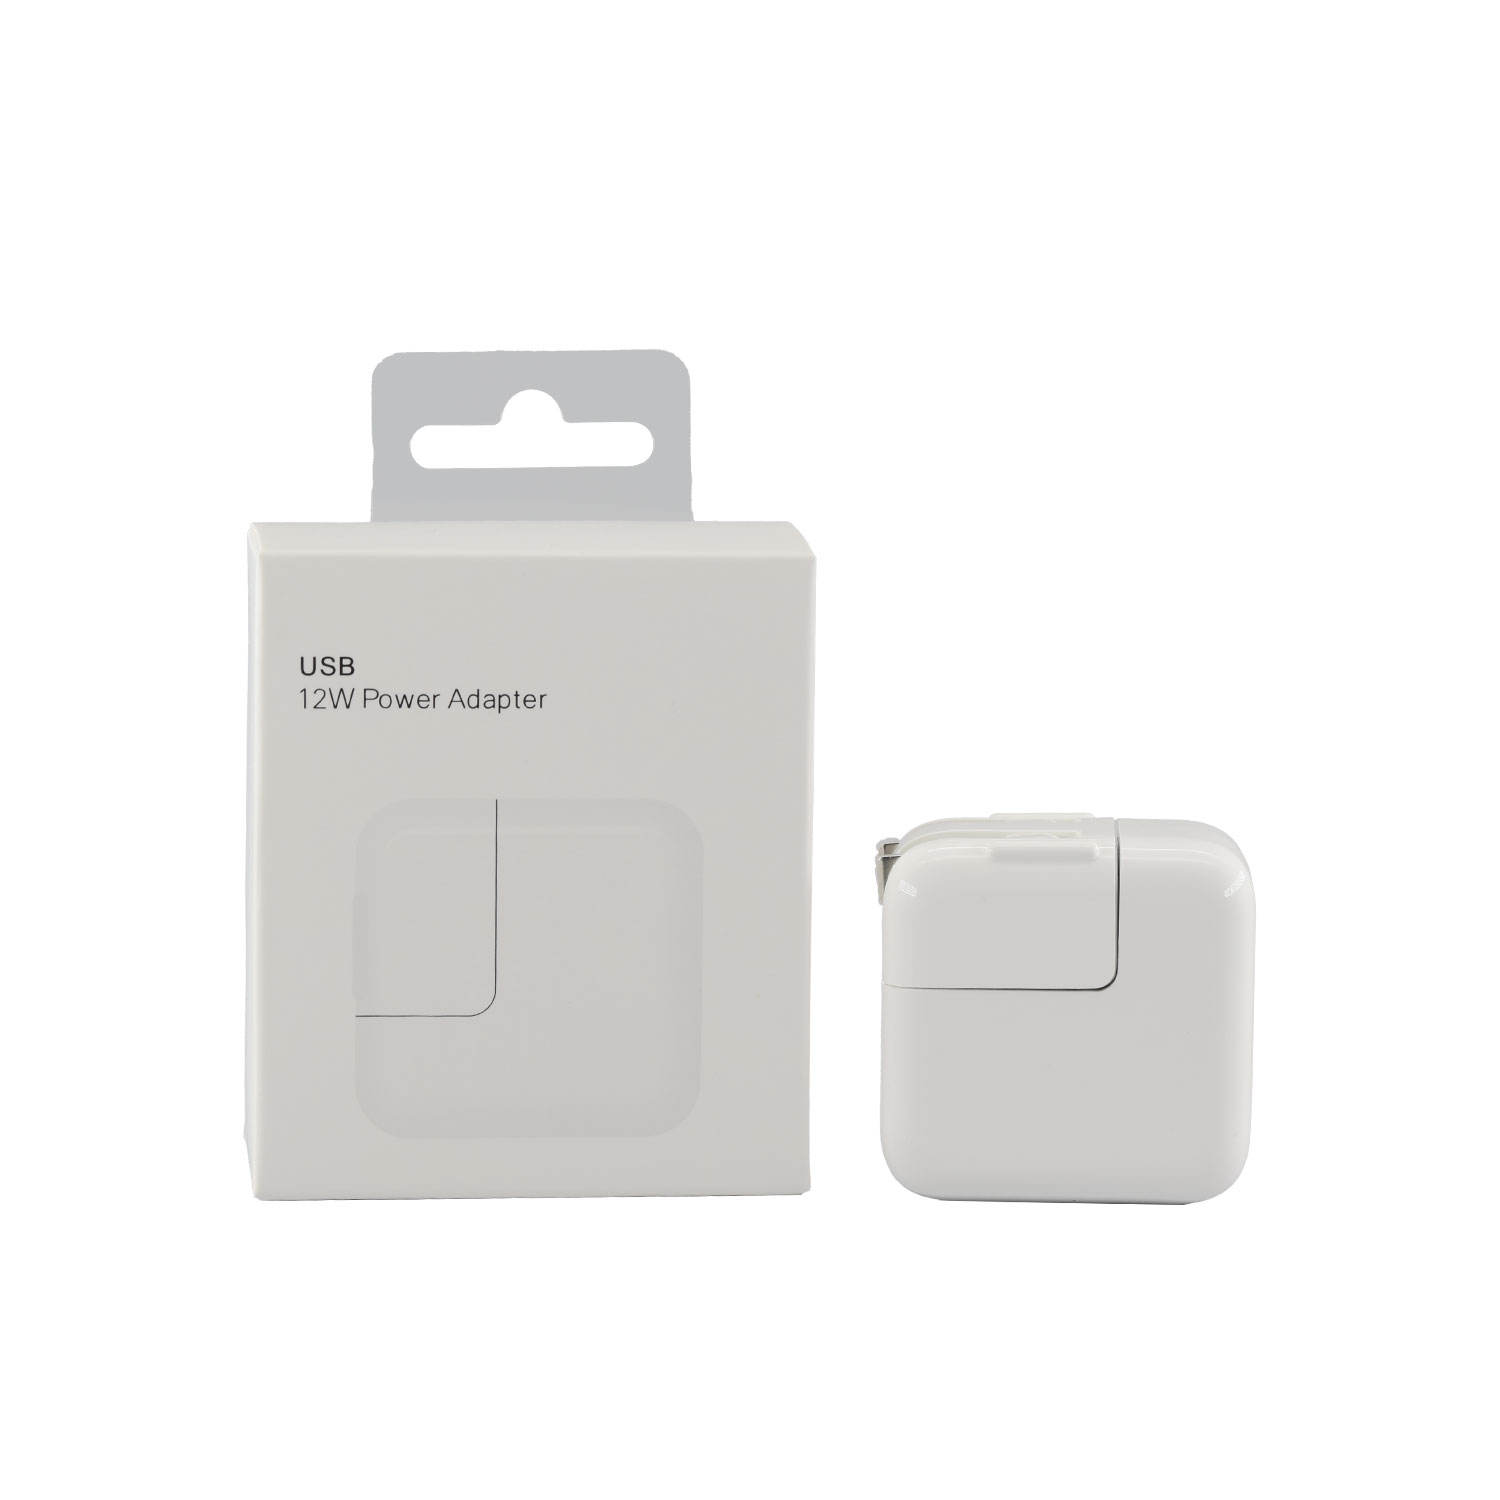 Retail pack original 12w power adapter wall charger travel us pin plug duckhead for Iphone and tablet pad 5 6 7 8 xs USB pro